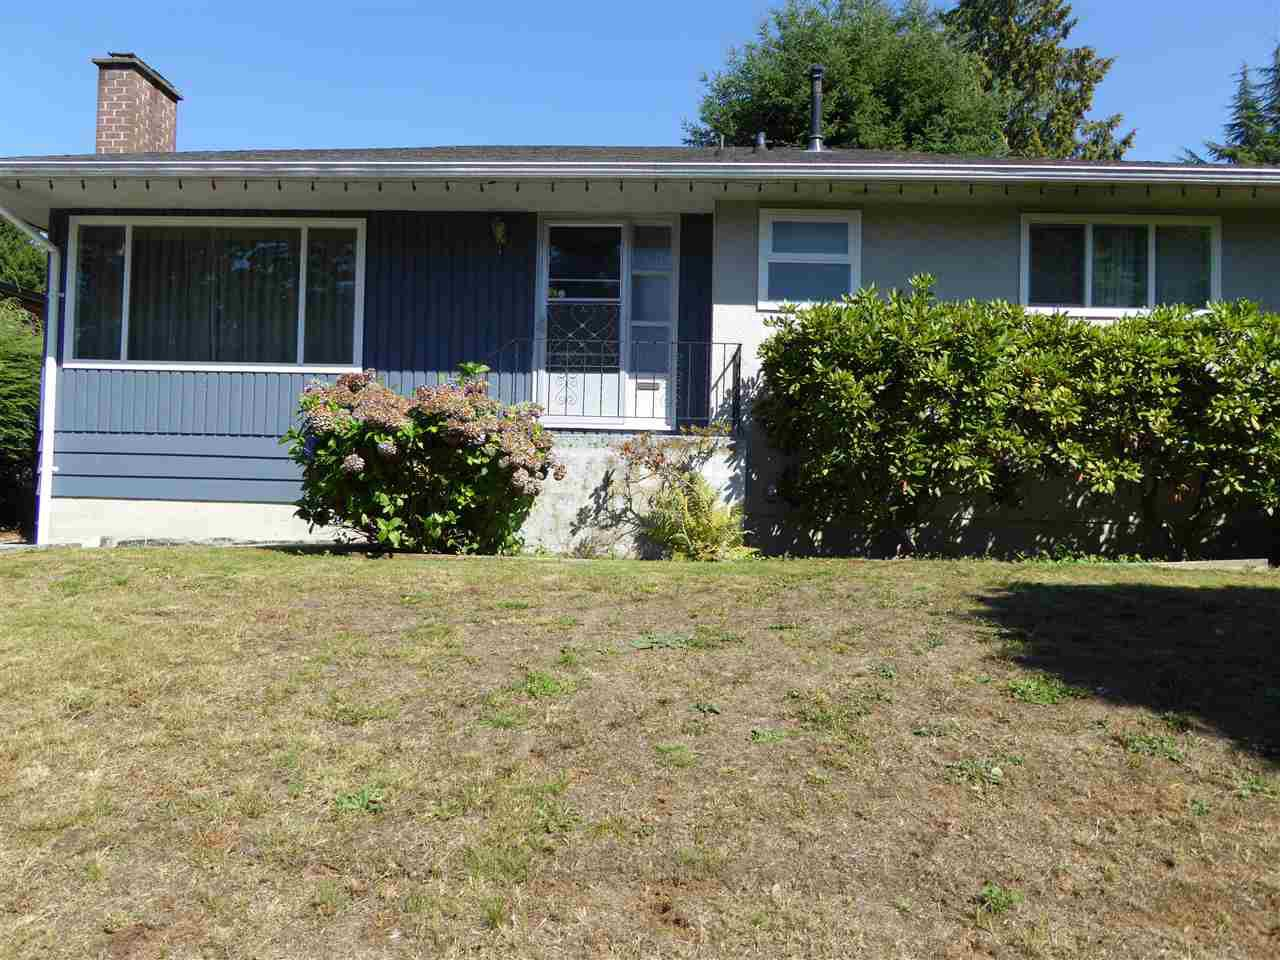 Main Photo: 659 SCHOOLHOUSE Street in Coquitlam: Central Coquitlam House for sale : MLS®# R2094981